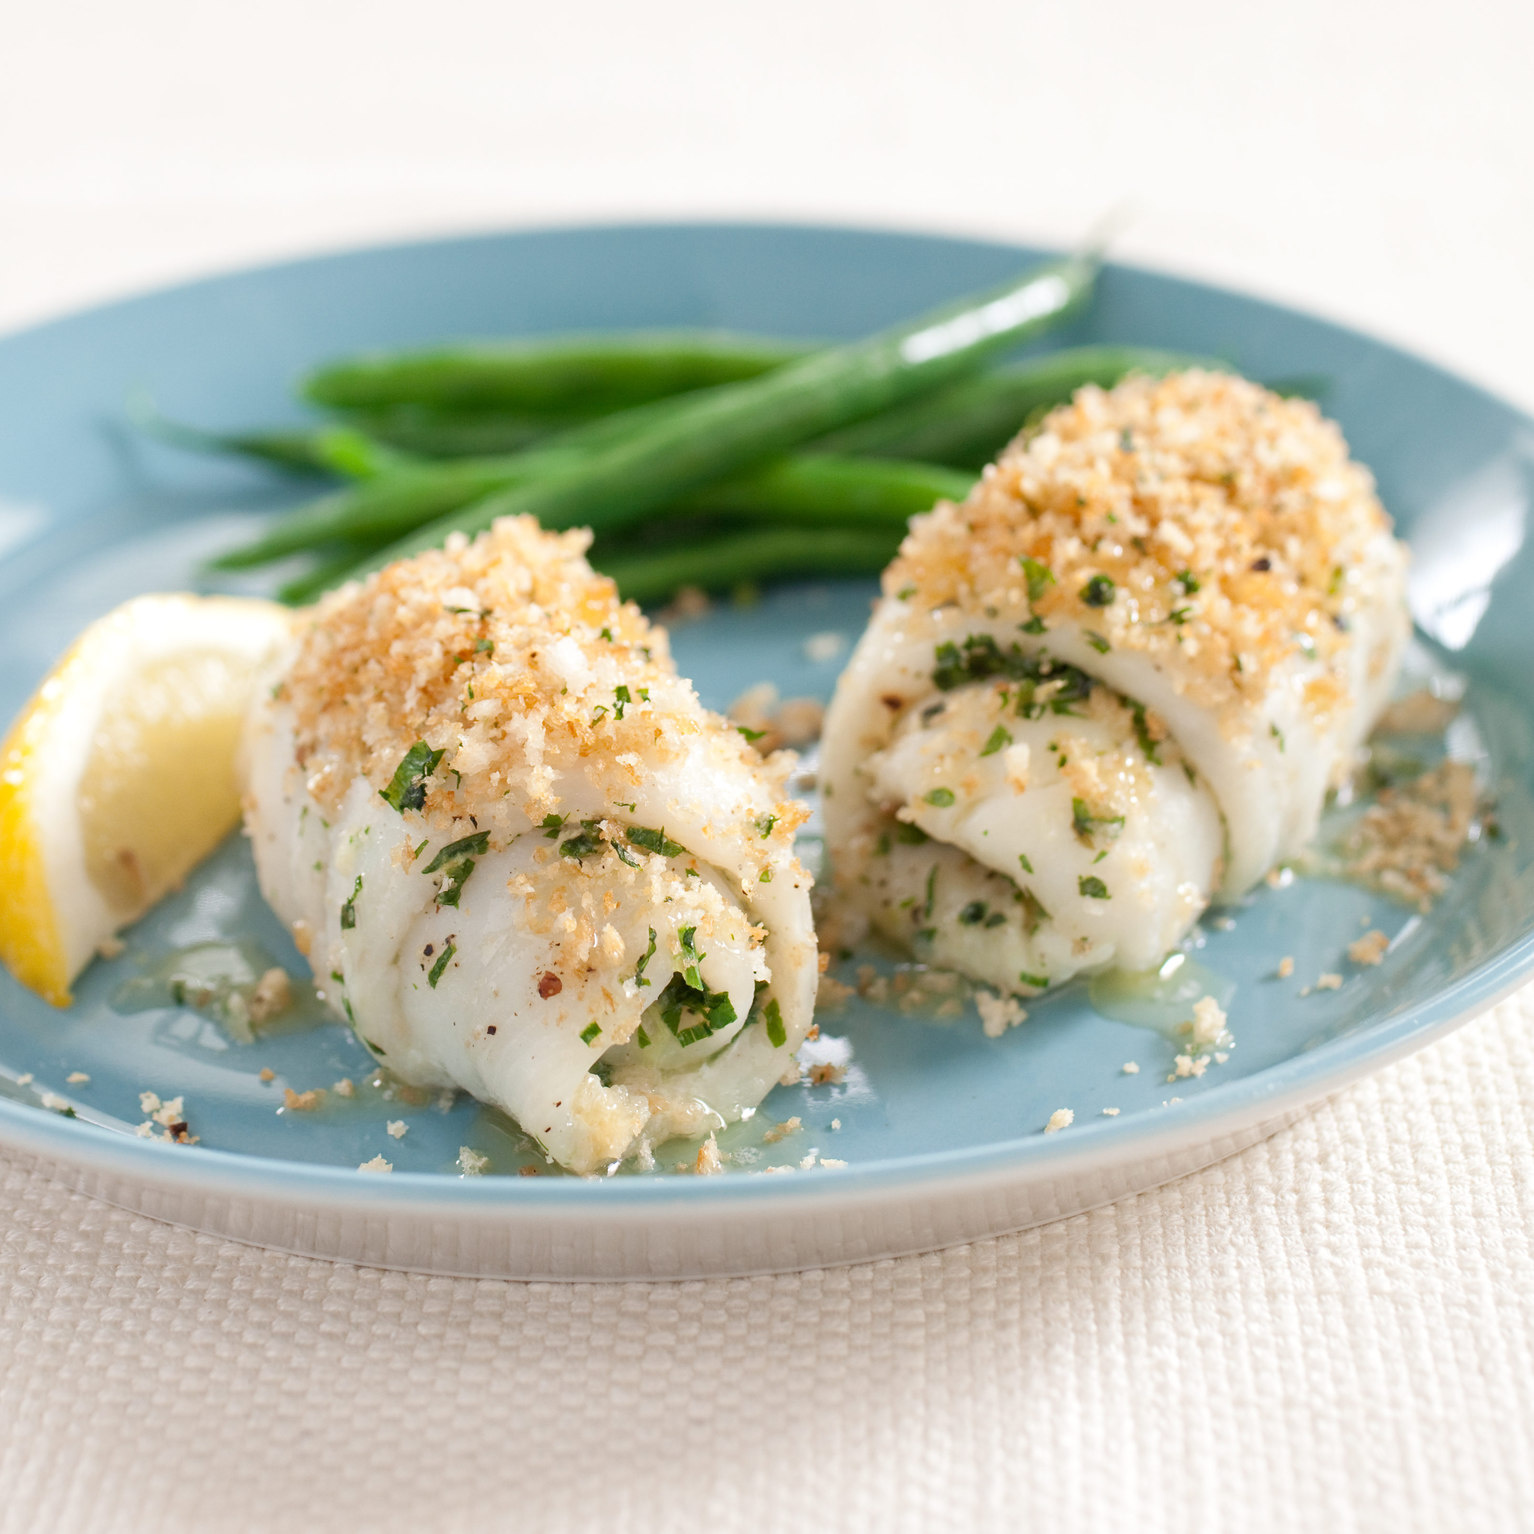 Baked Sole Fillets with Herbs and Bread Crumbs